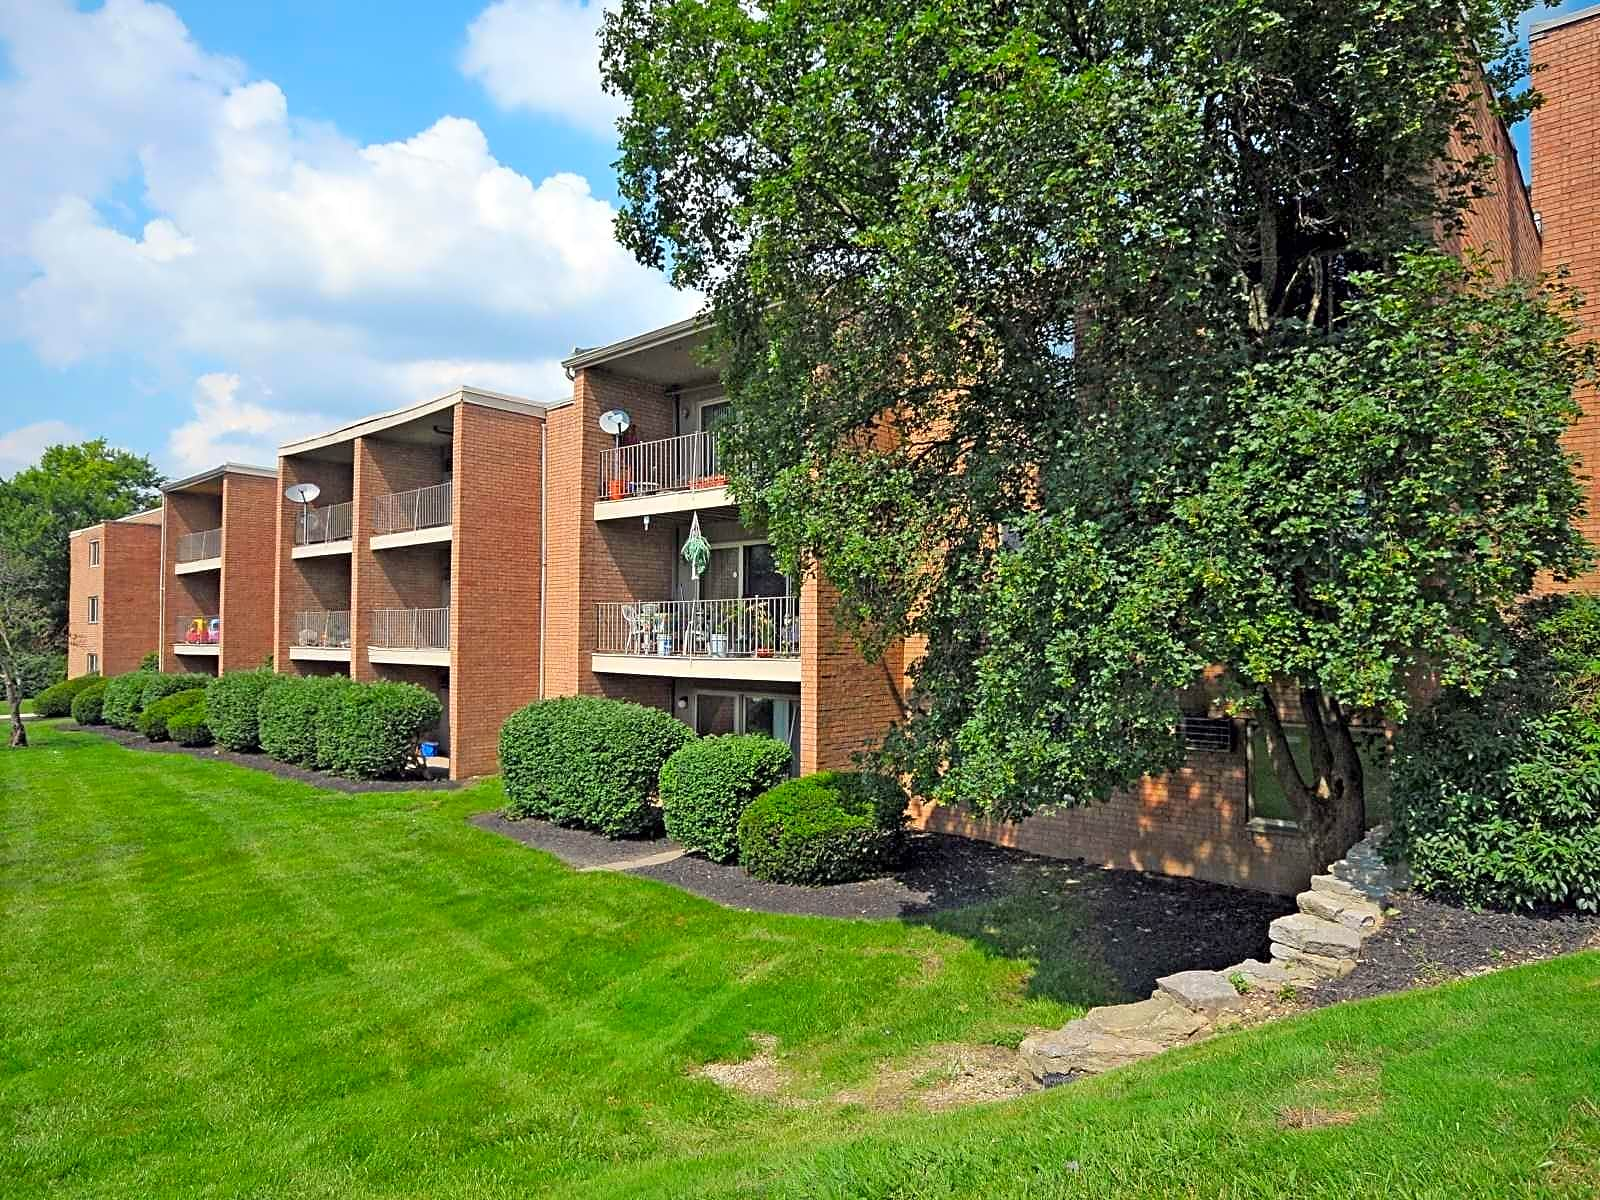 Apartments Near Thomas More Crown Pointe for Thomas More College Students in Crestview Hills, KY